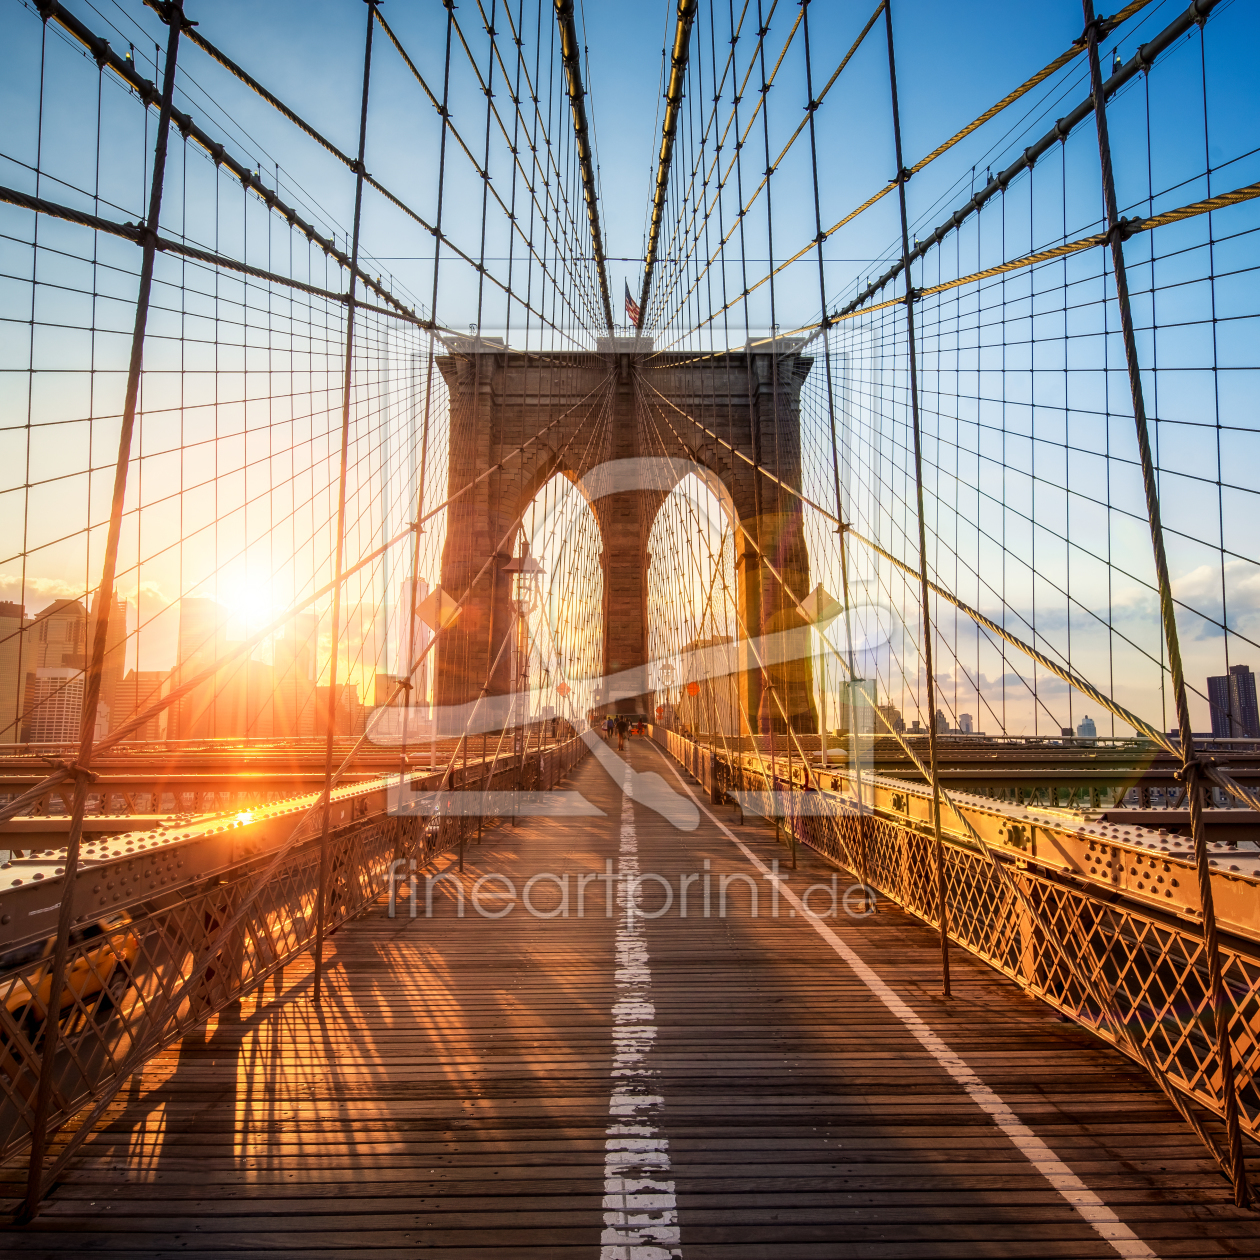 Bild-Nr.: 11966272 Brooklyn Bridge in New York City erstellt von eyetronic